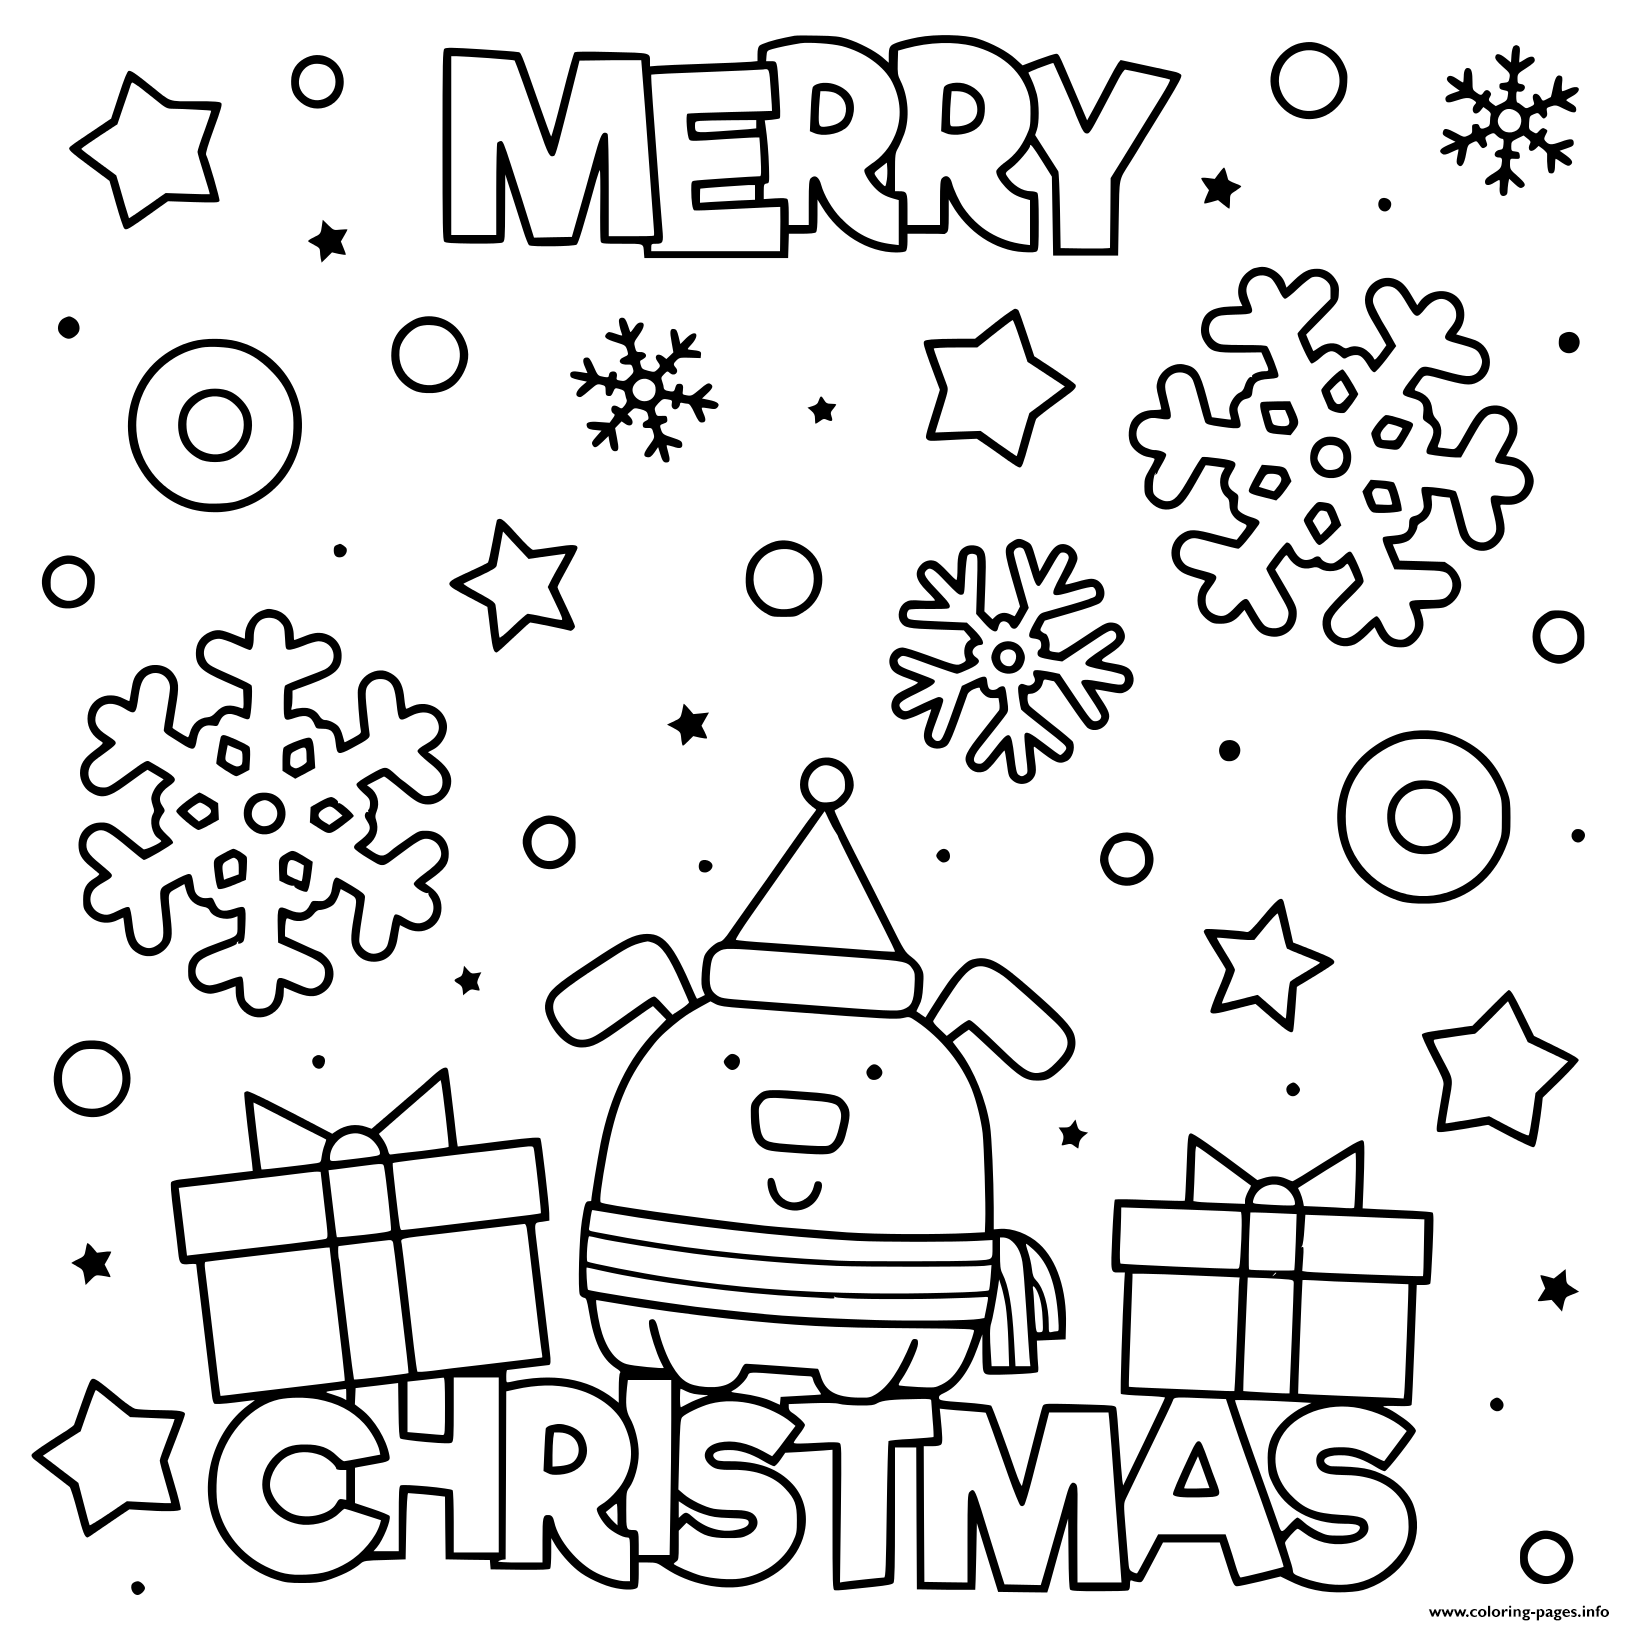 Cute Dog Wish Merry Christmas Coloring Pages Printable